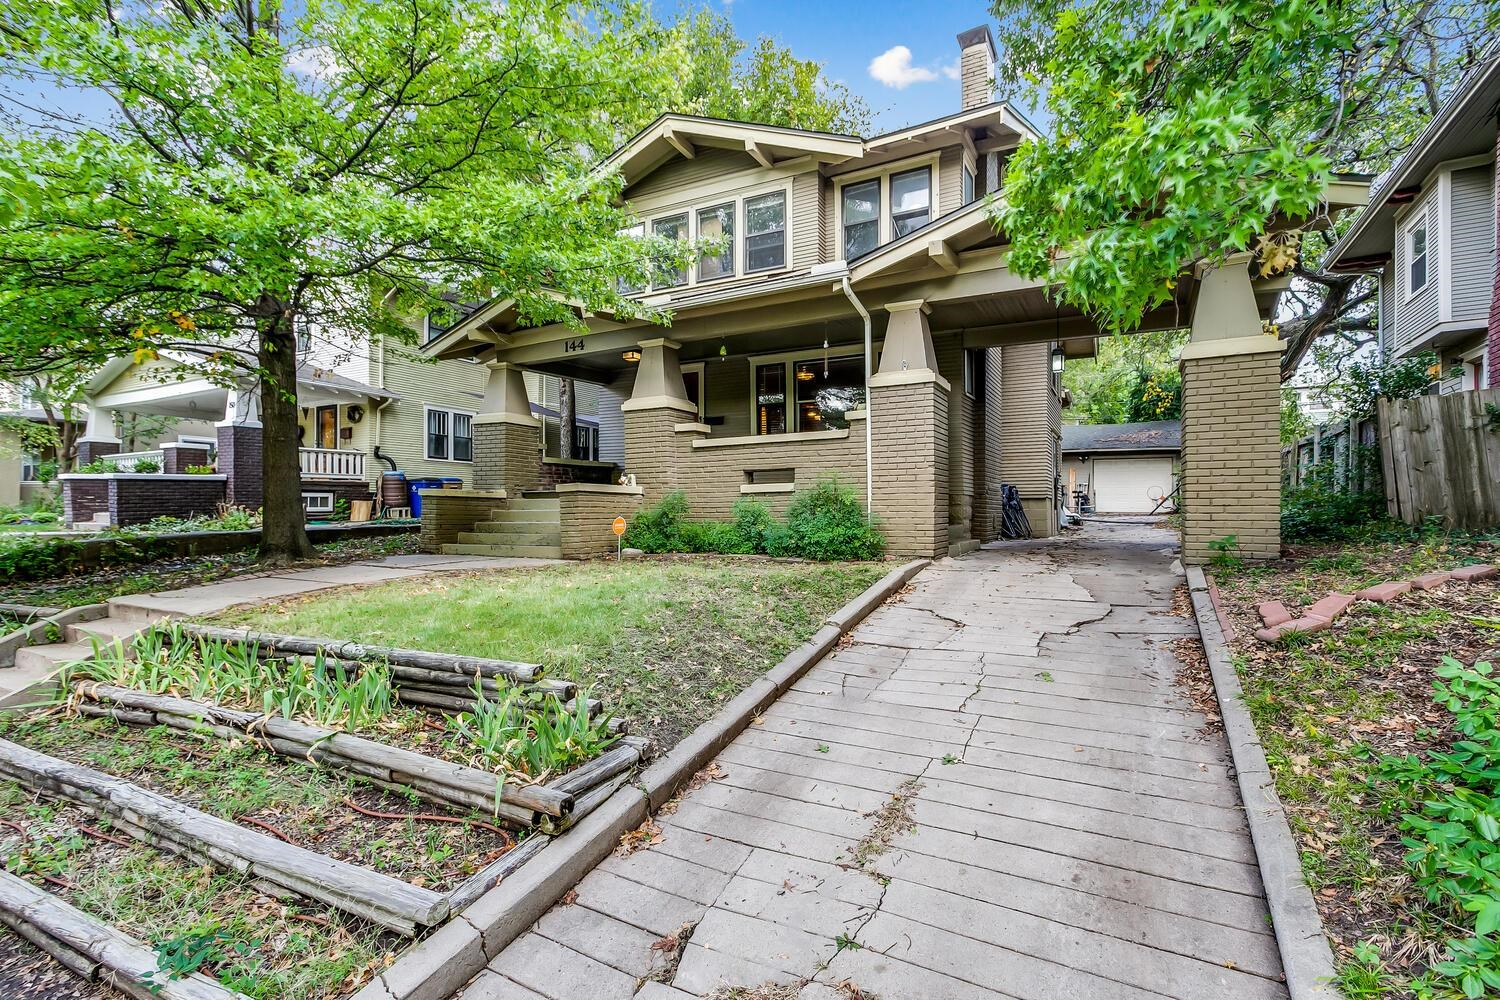 LOCATION LOCATION LOCATION! Classic College Hill Home walking distance to Clifton Square, The Belmon